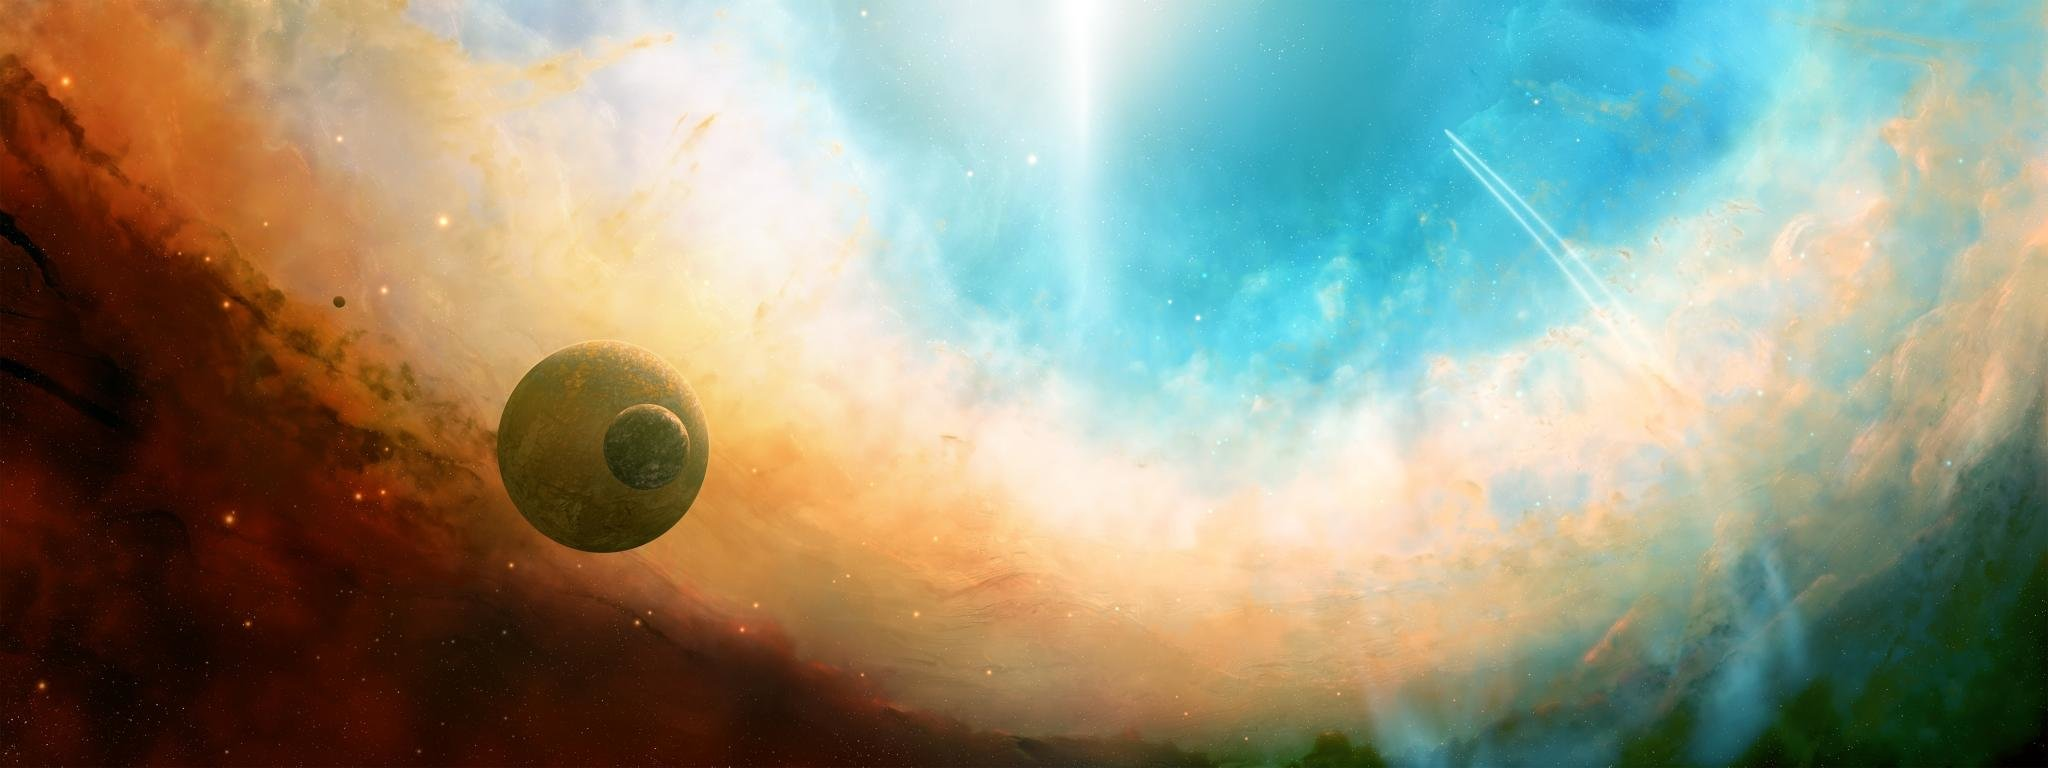 Download dual monitor 2048x768 Planets PC wallpaper ID:153610 for free